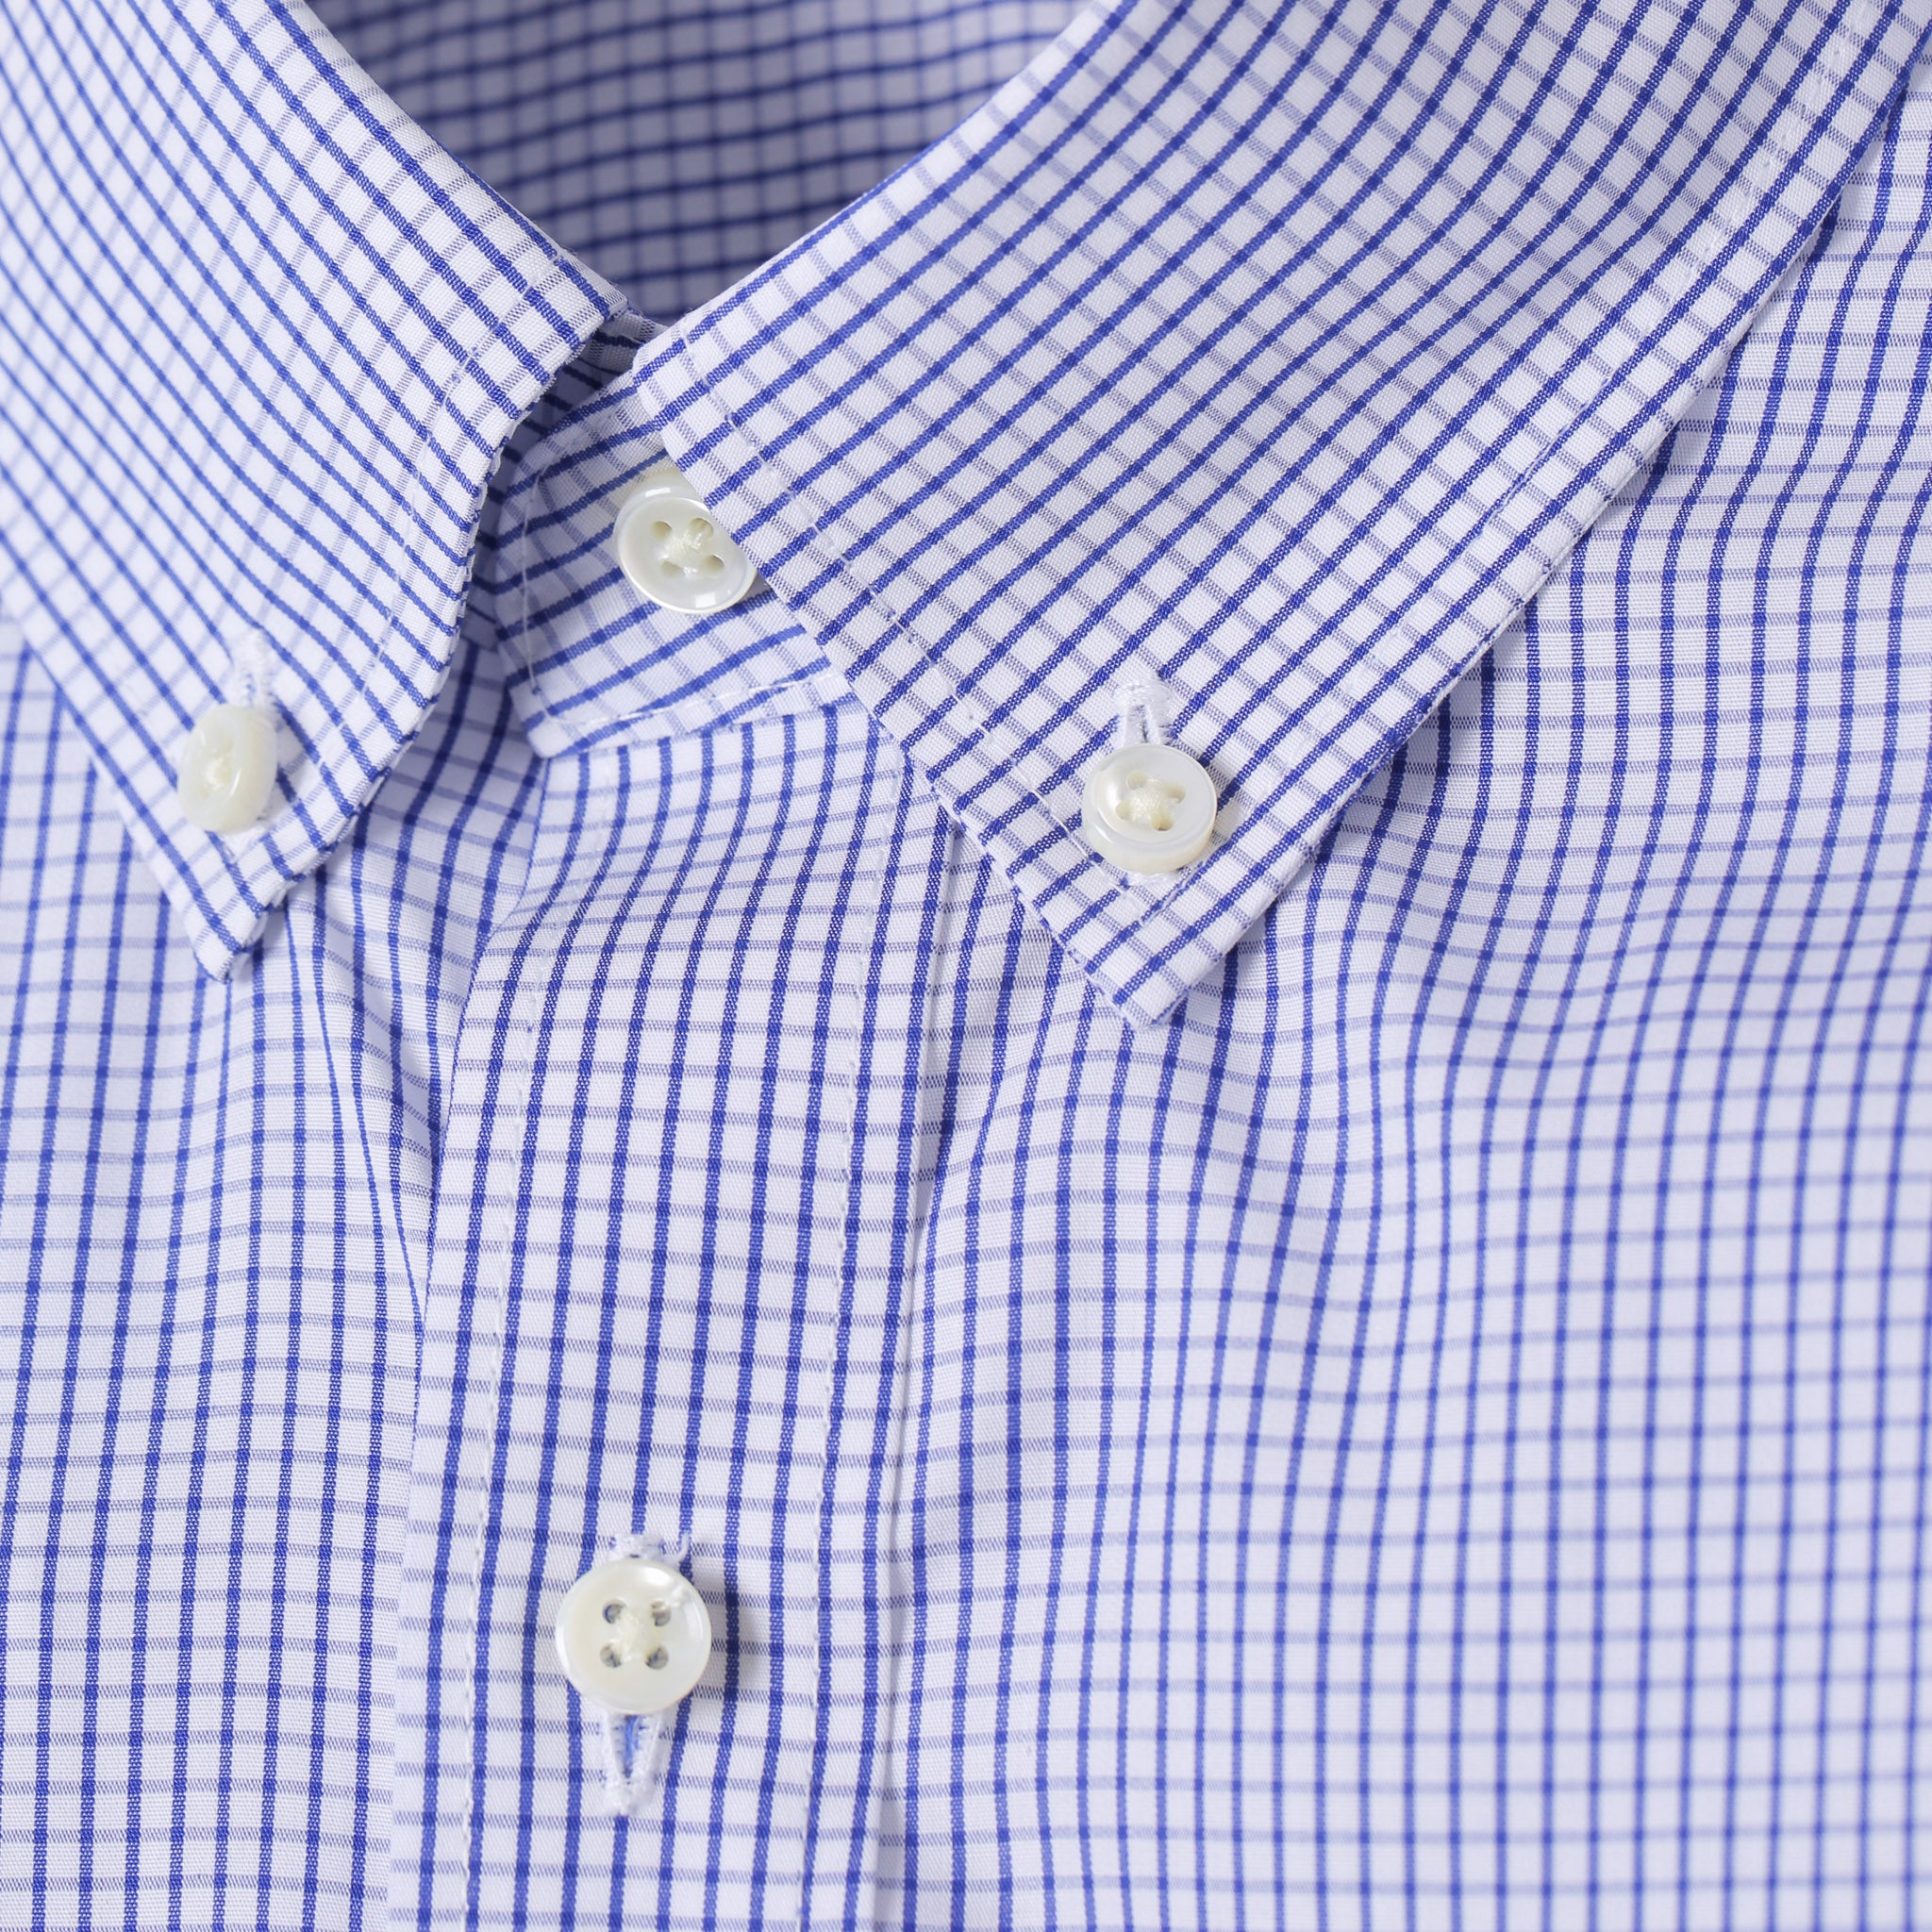 Mason Everyday Premium Shirt in Navy Grid Check